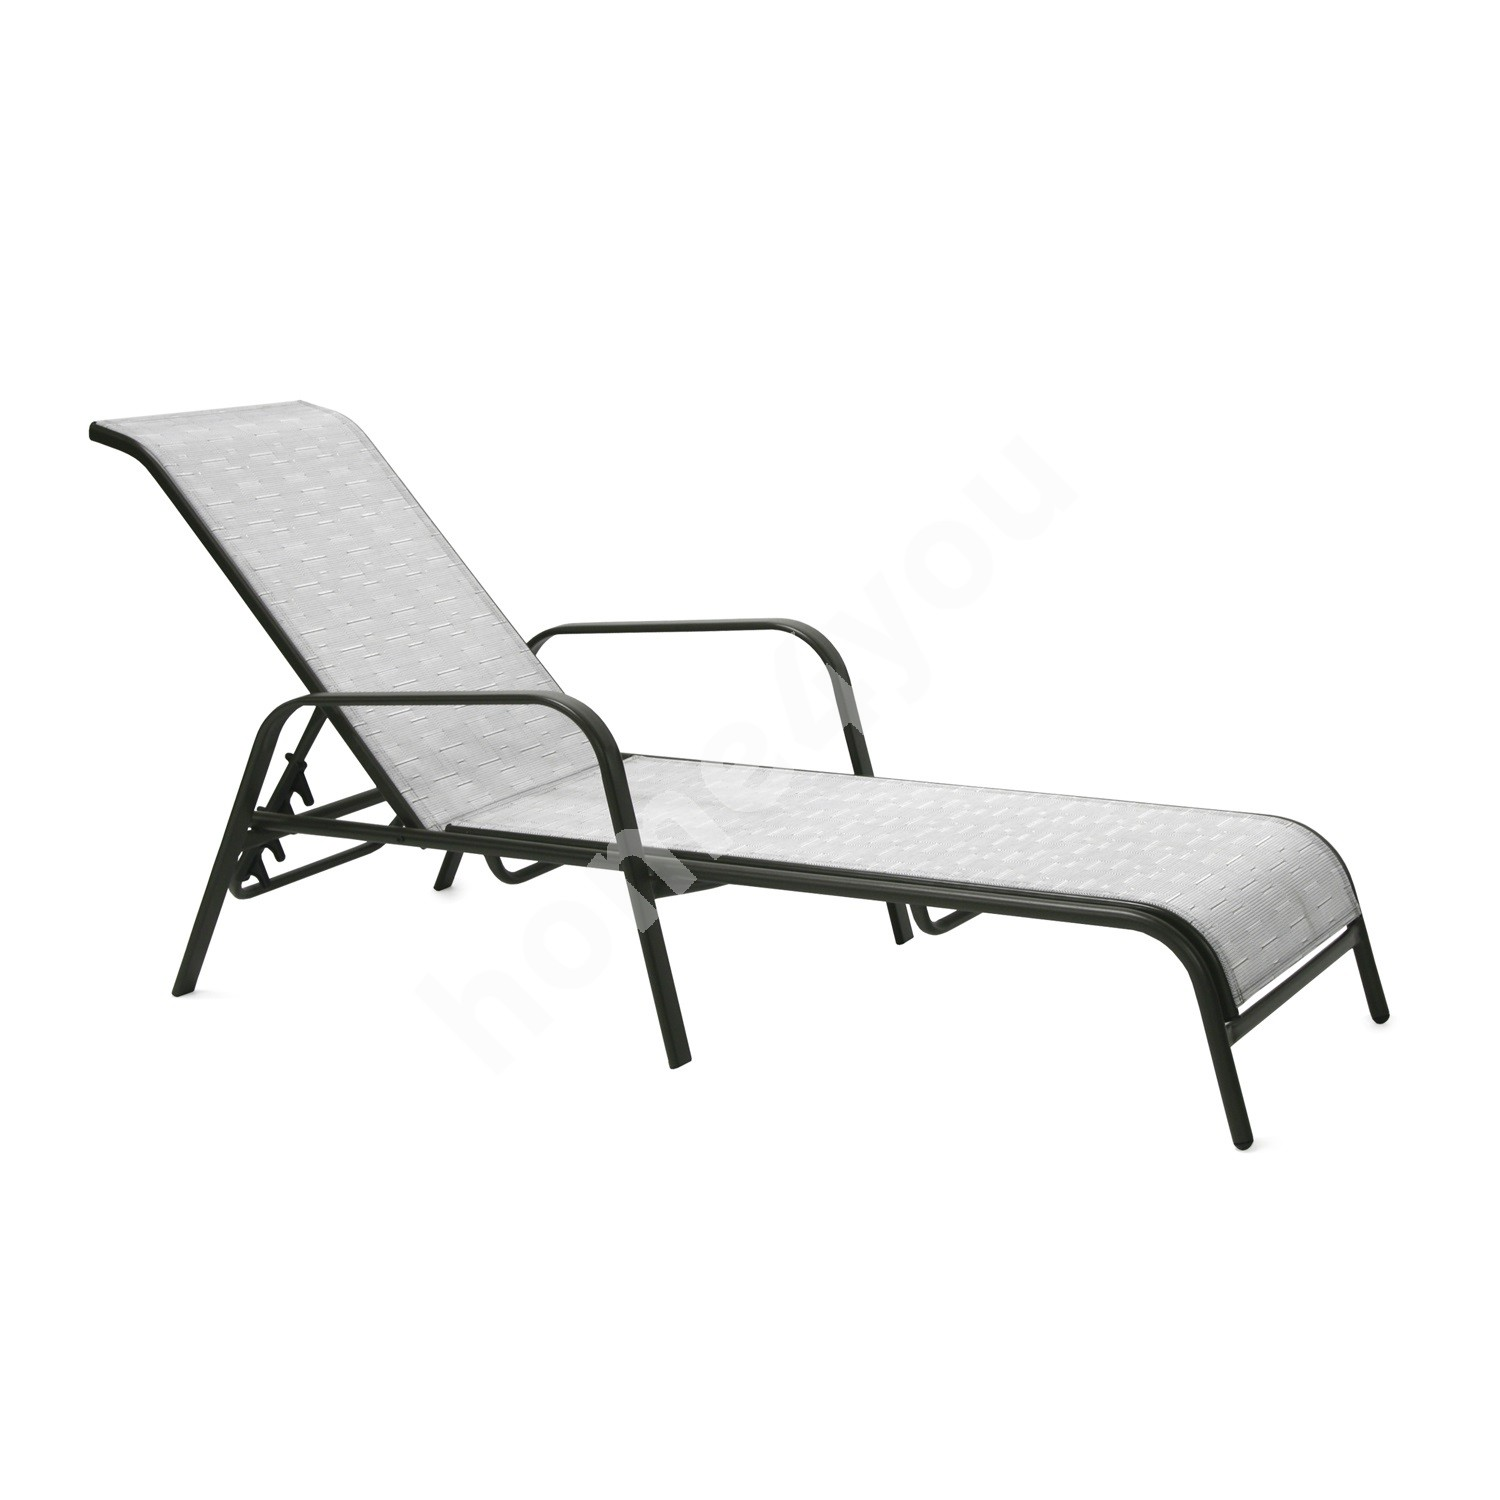 Deck chair DUBLIN 161x66,5xH48/100cm, seat and back rest: textiline, color: silver grey, steel frame, color: dark brown